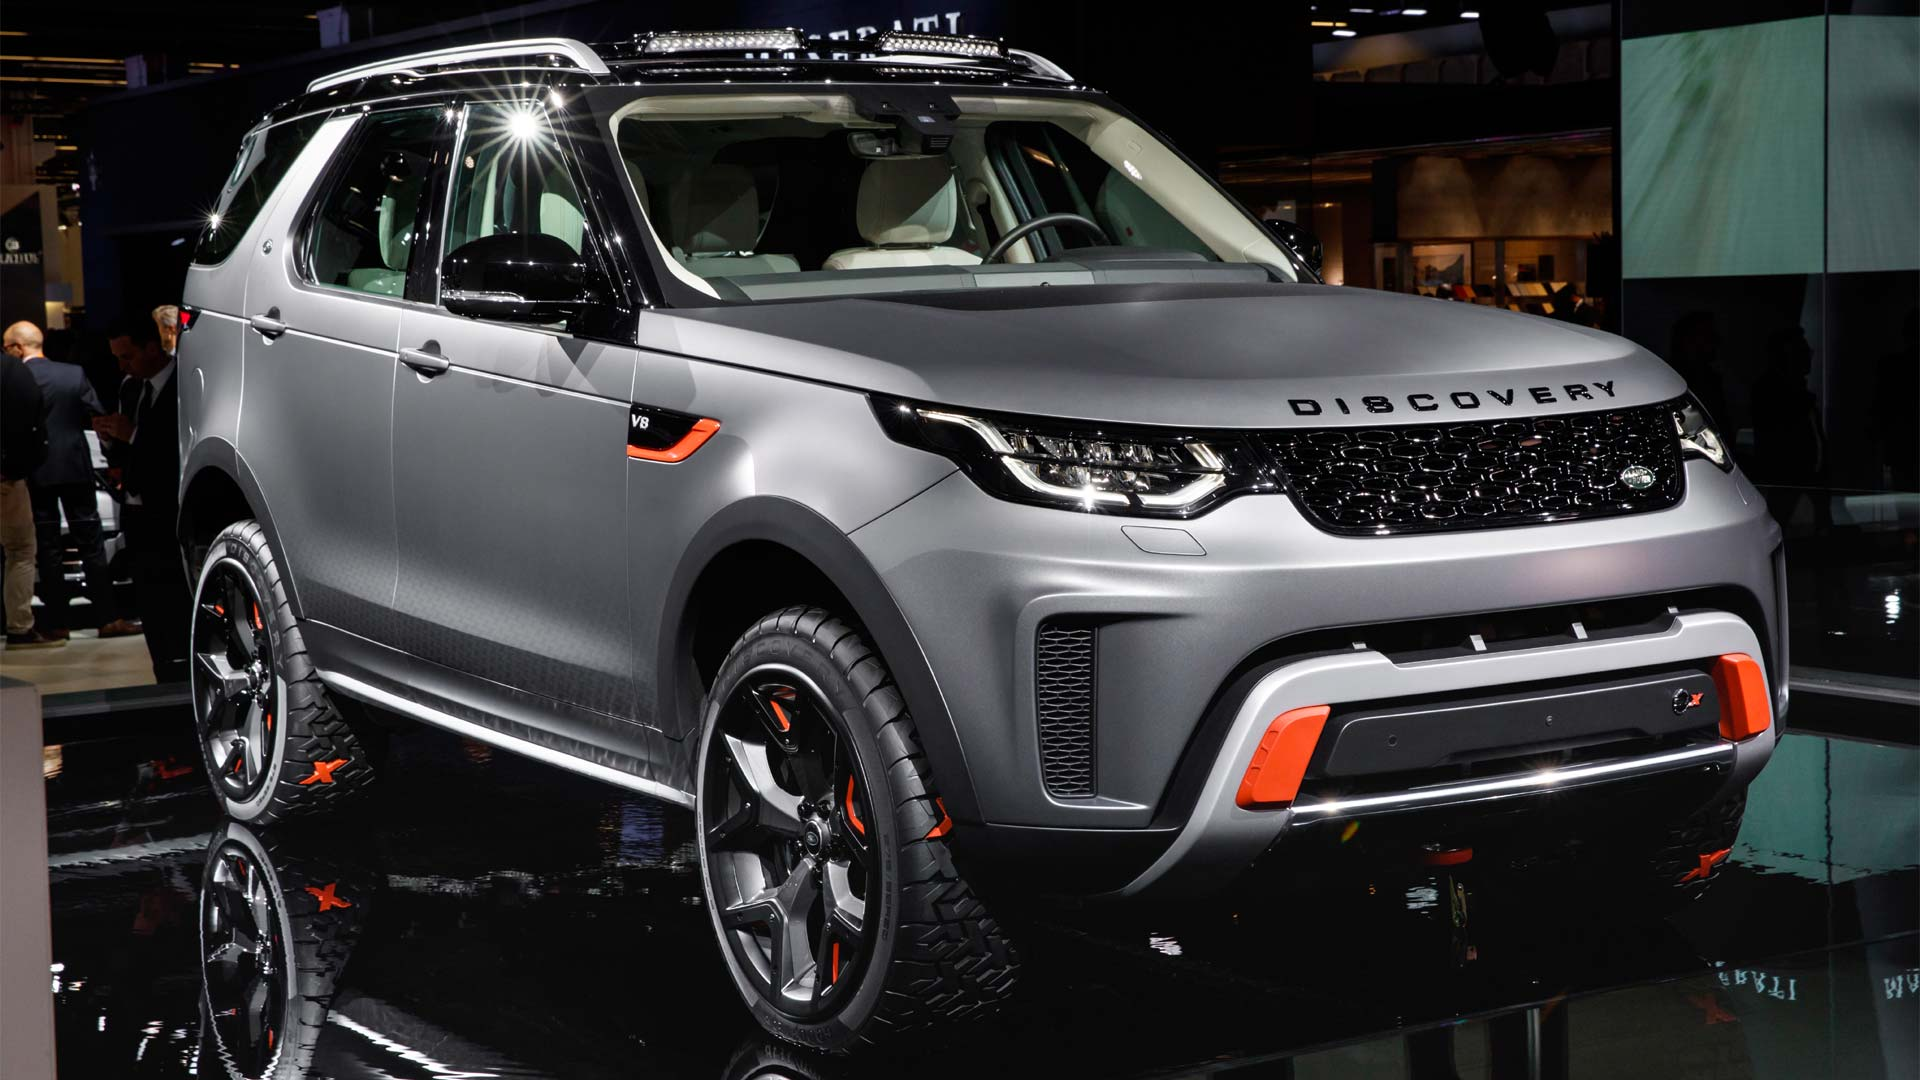 Land Rover Lr4 Off Road Accessories >> Land Rover Discovery SVX is ready for your epic adventures - Autodevot